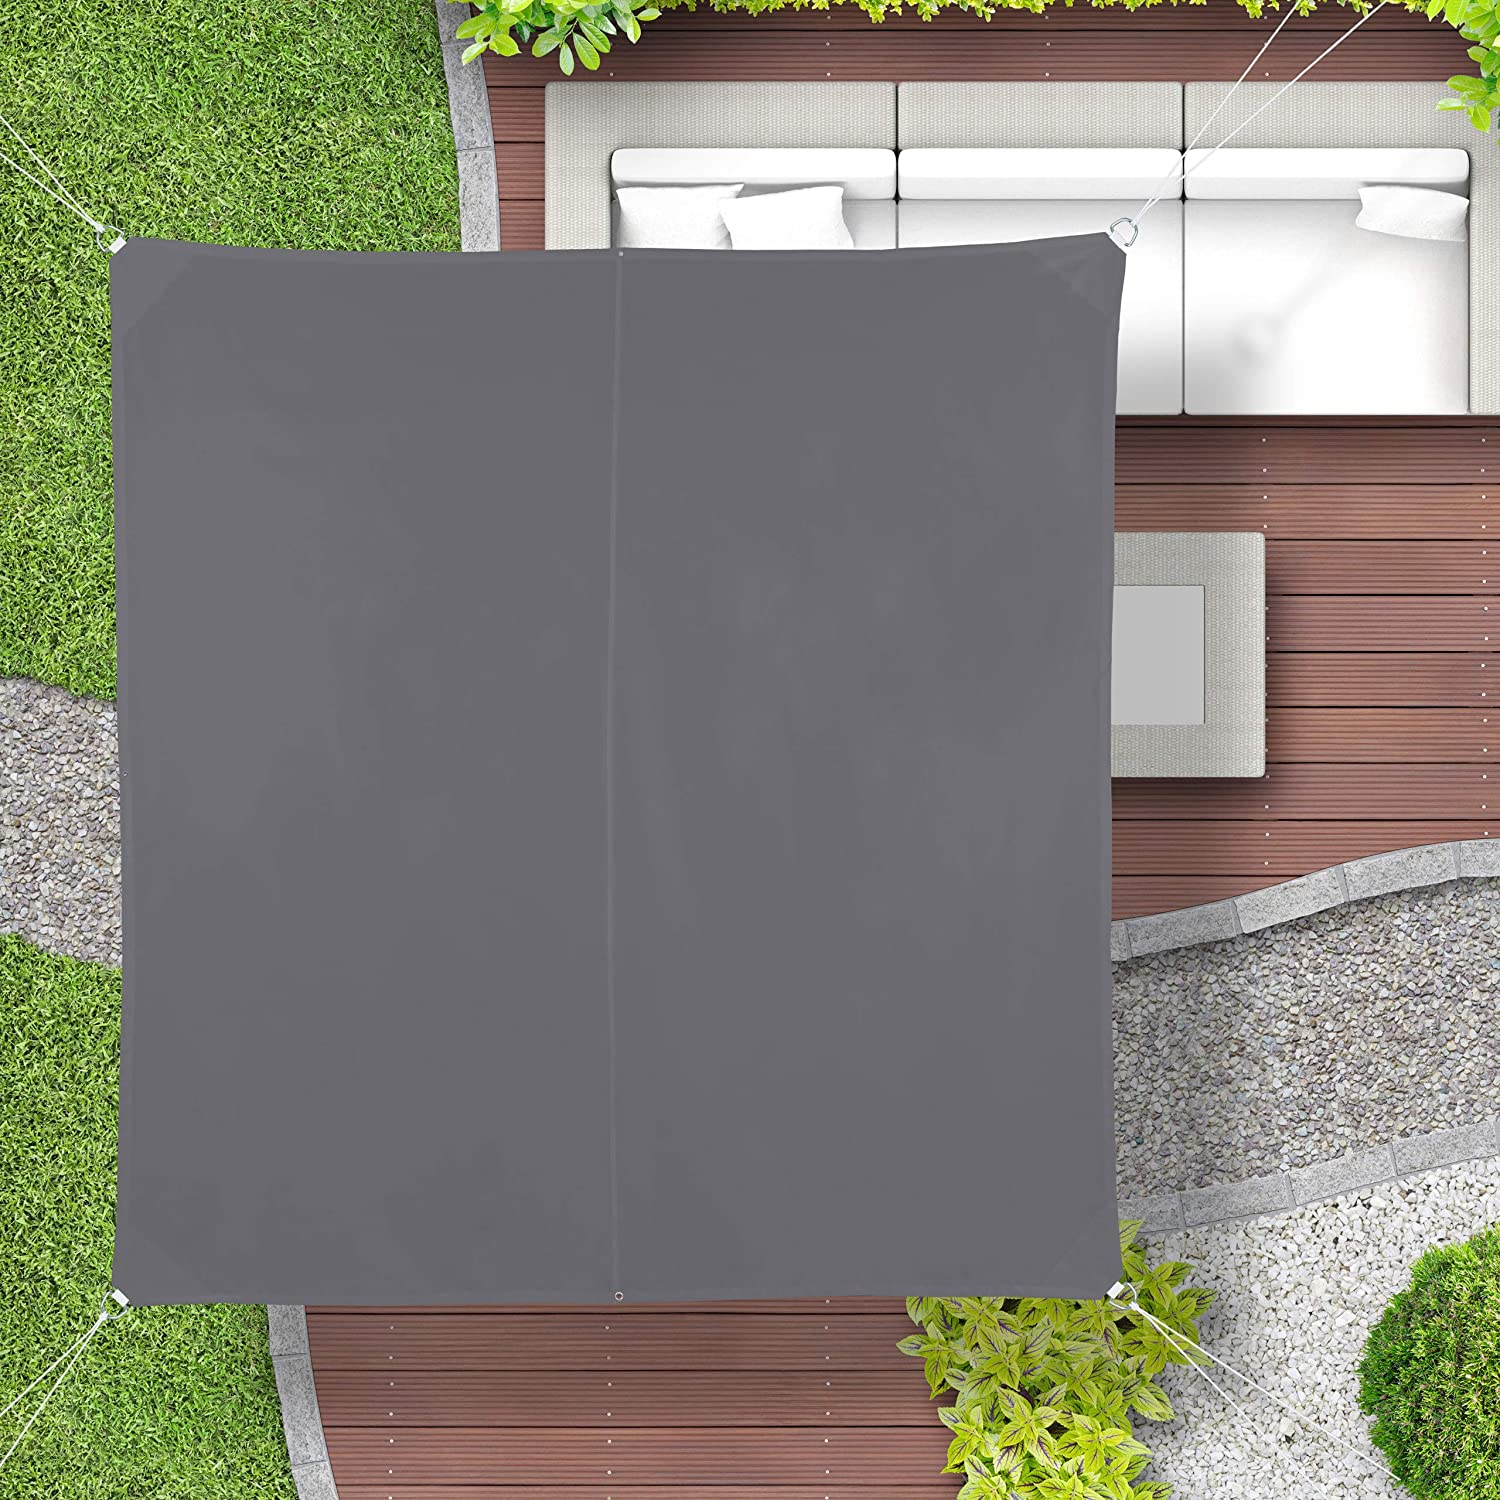 Balcony Canopy Relaxdays Shade Sail Water-Repellent Grey WXD: 2 x 2 m UV-Protection with Tethers Square